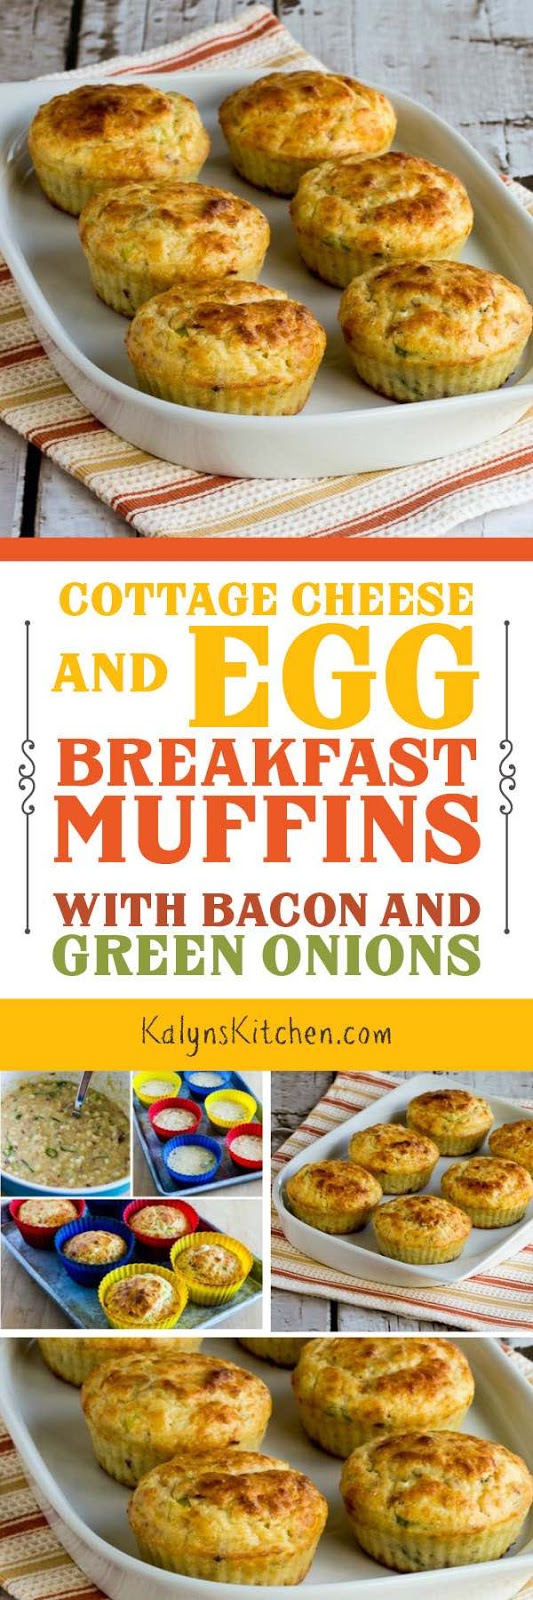 Kalyn S Kitchen 174 Cottage Cheese And Egg Breakfast Muffins